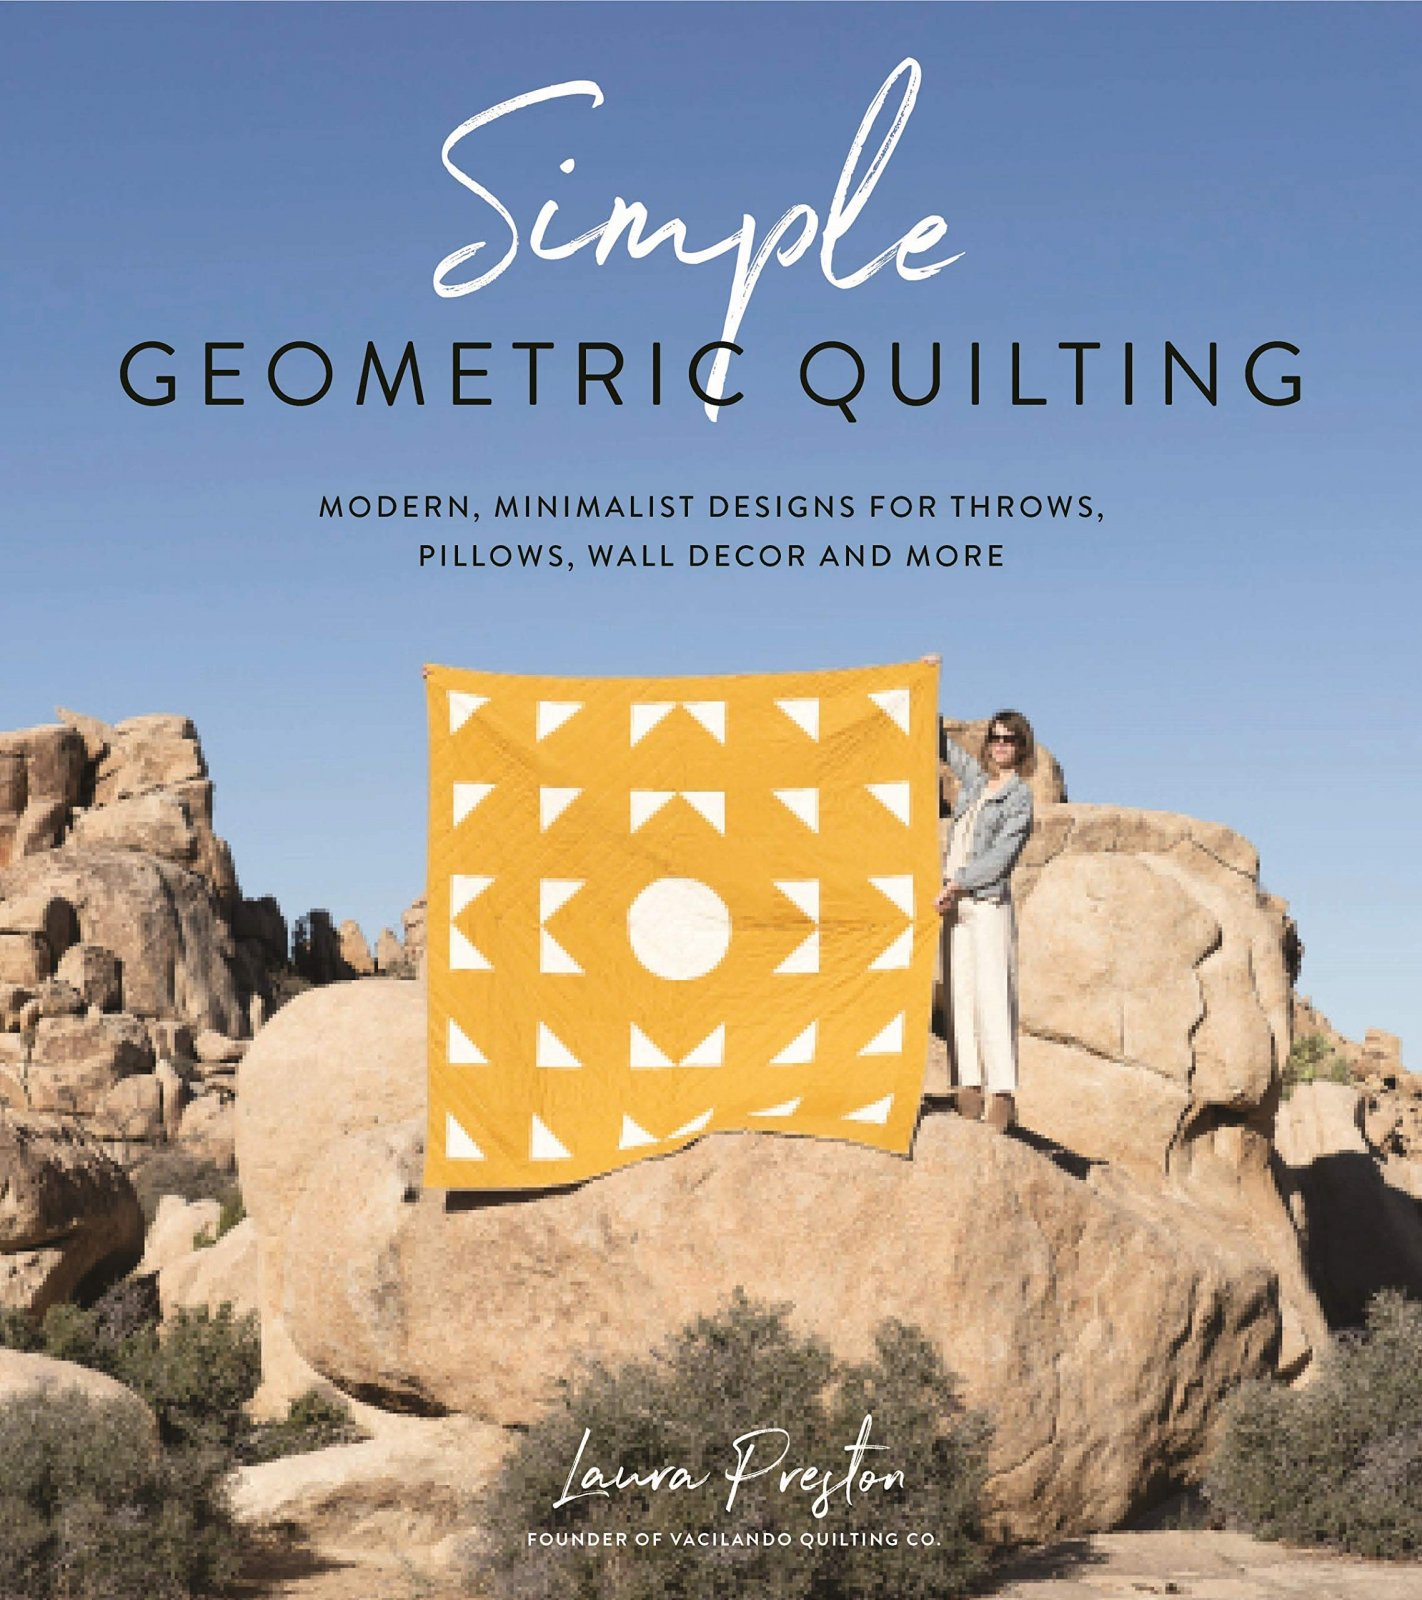 Simple Geometric Quilting Book - Vacilando Quilting Co (Laura Preston)